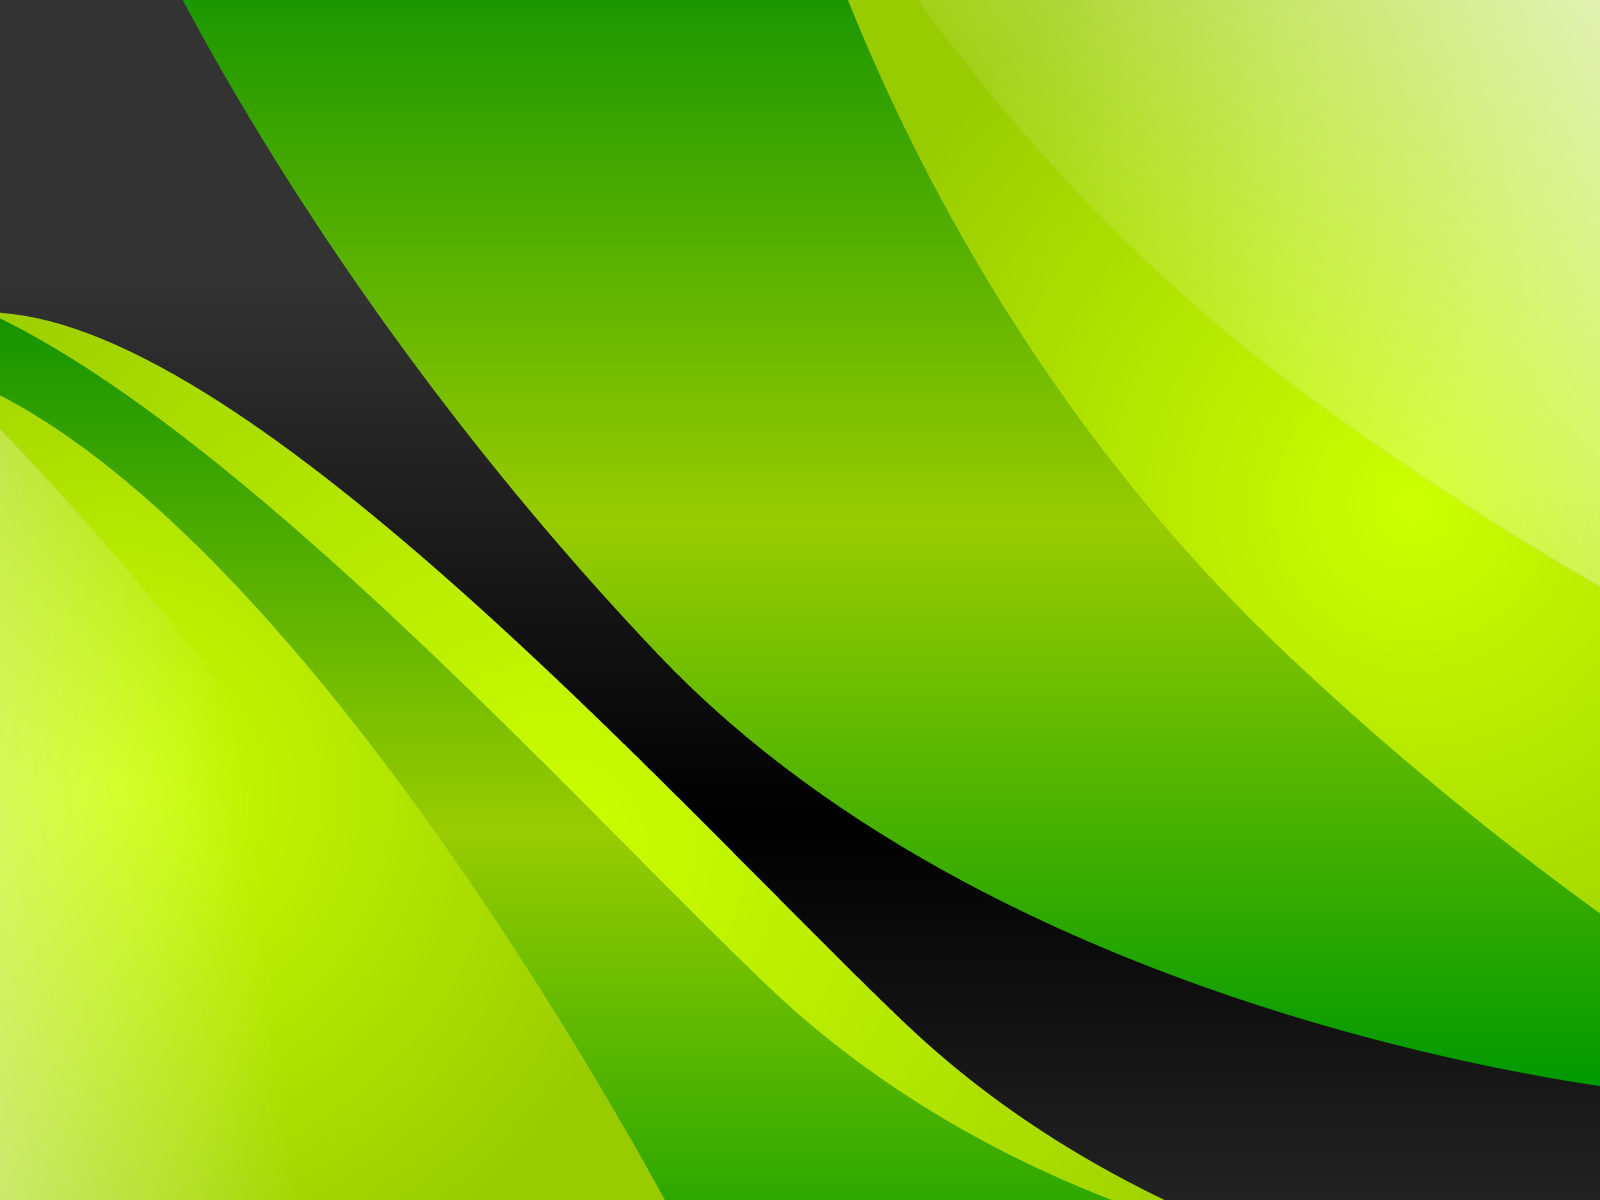 Yellow And Green Wallpapers: Black And White Wallpapers: Green-Yellow Abstract Wallpaper